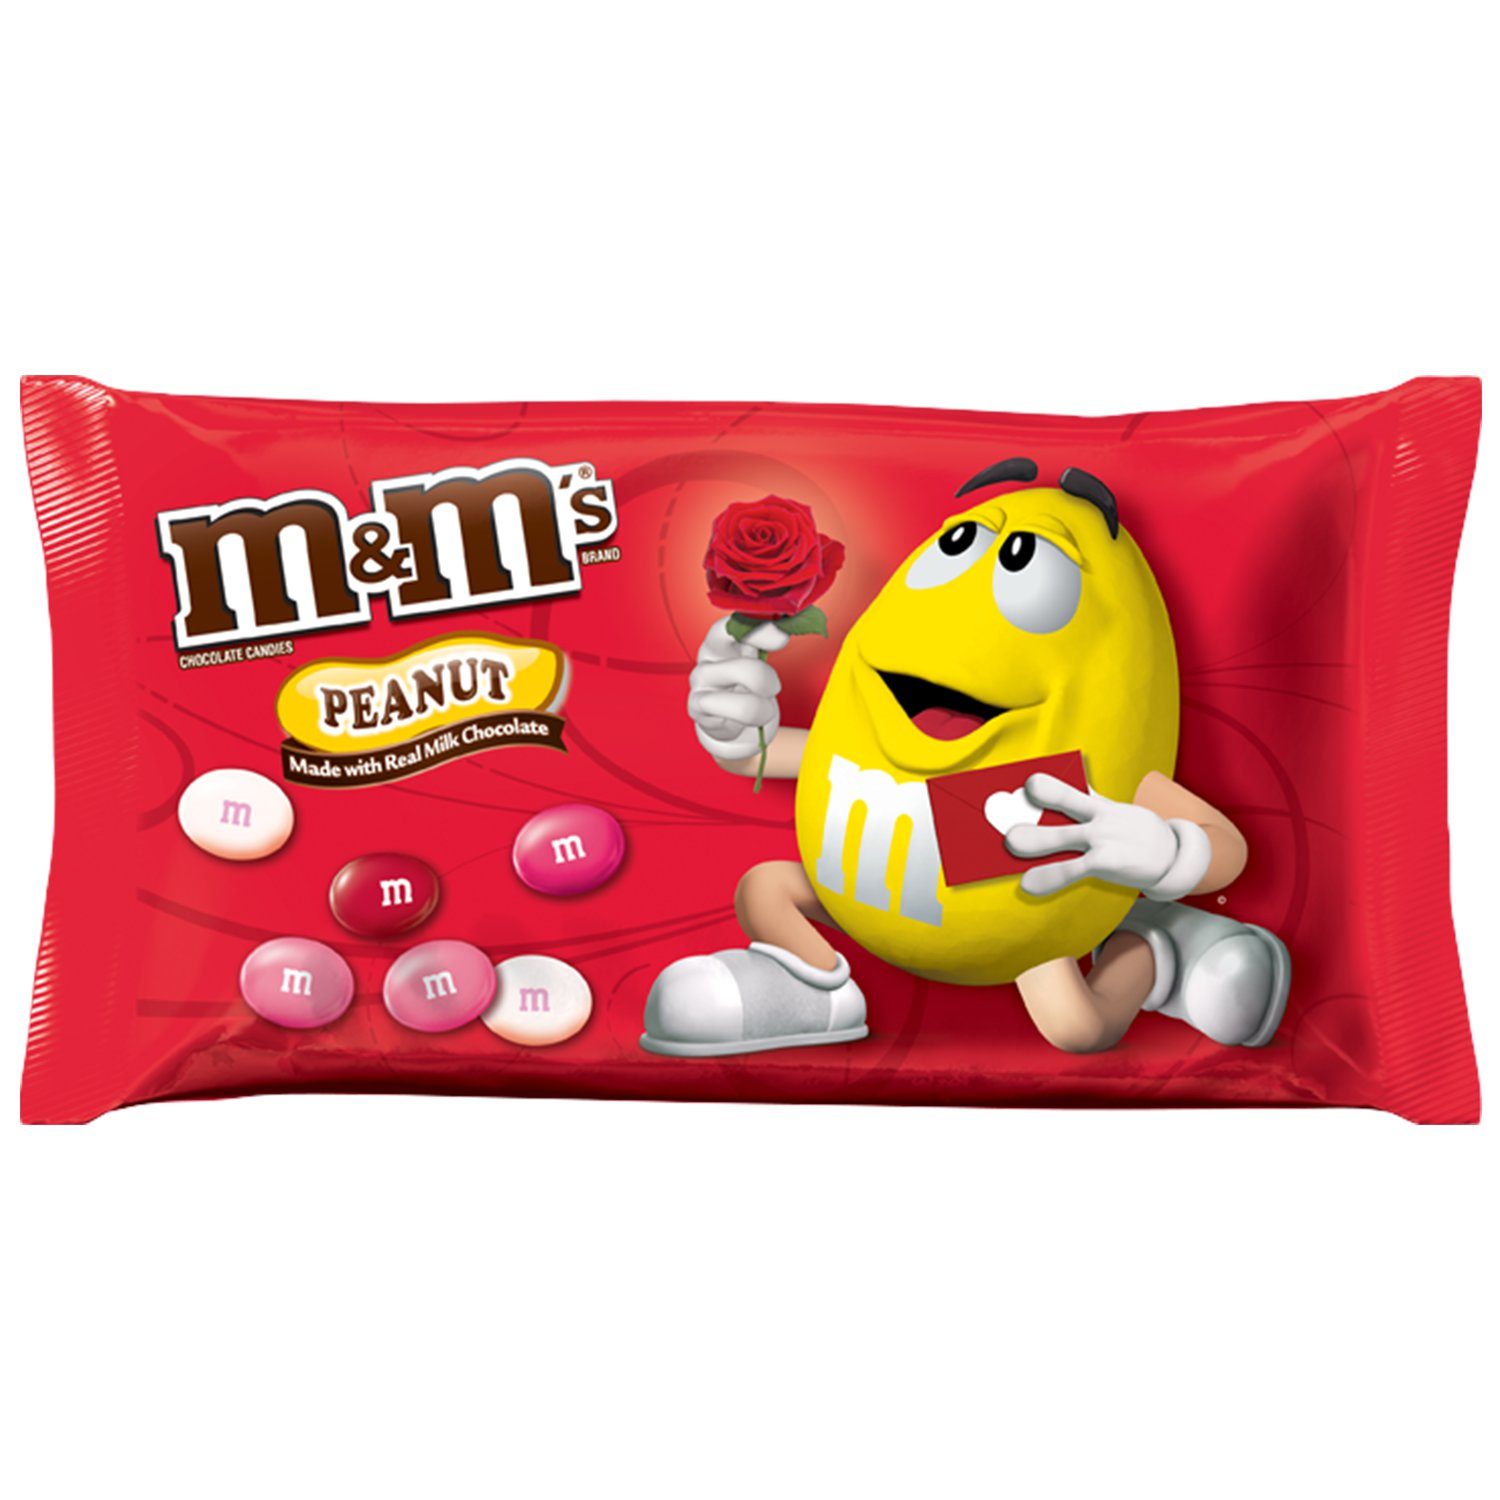 M&M'S Valentine's Peanut Chocolate Candy Bag, 11.4 oz